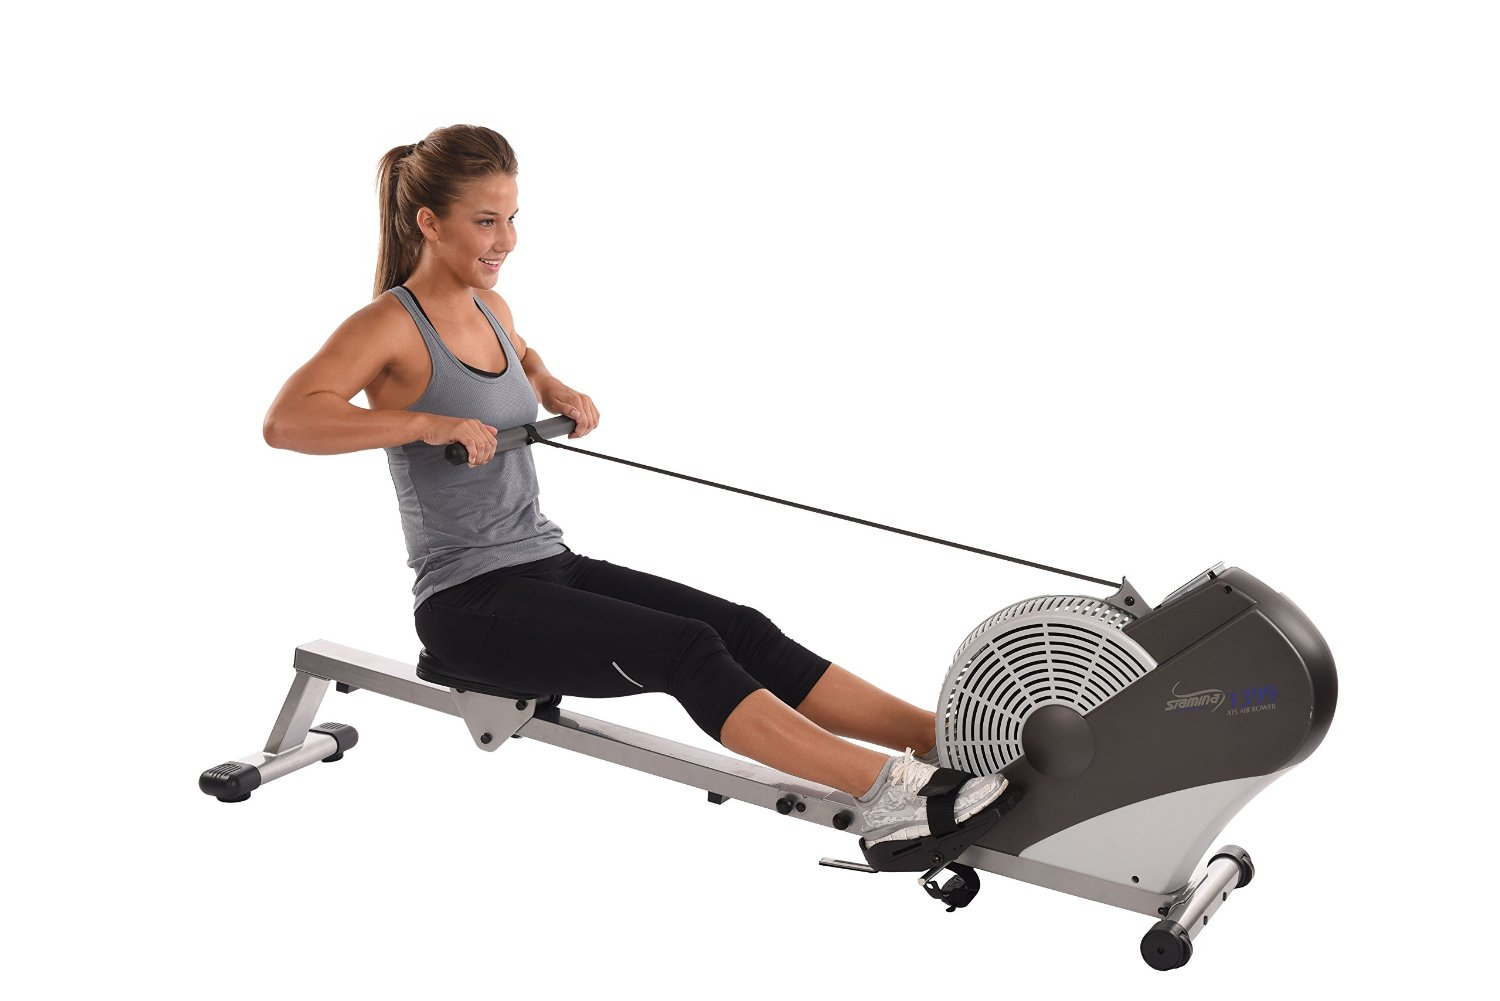 Stamina 1399 Air Rower Machine Reviews │drench Fitness